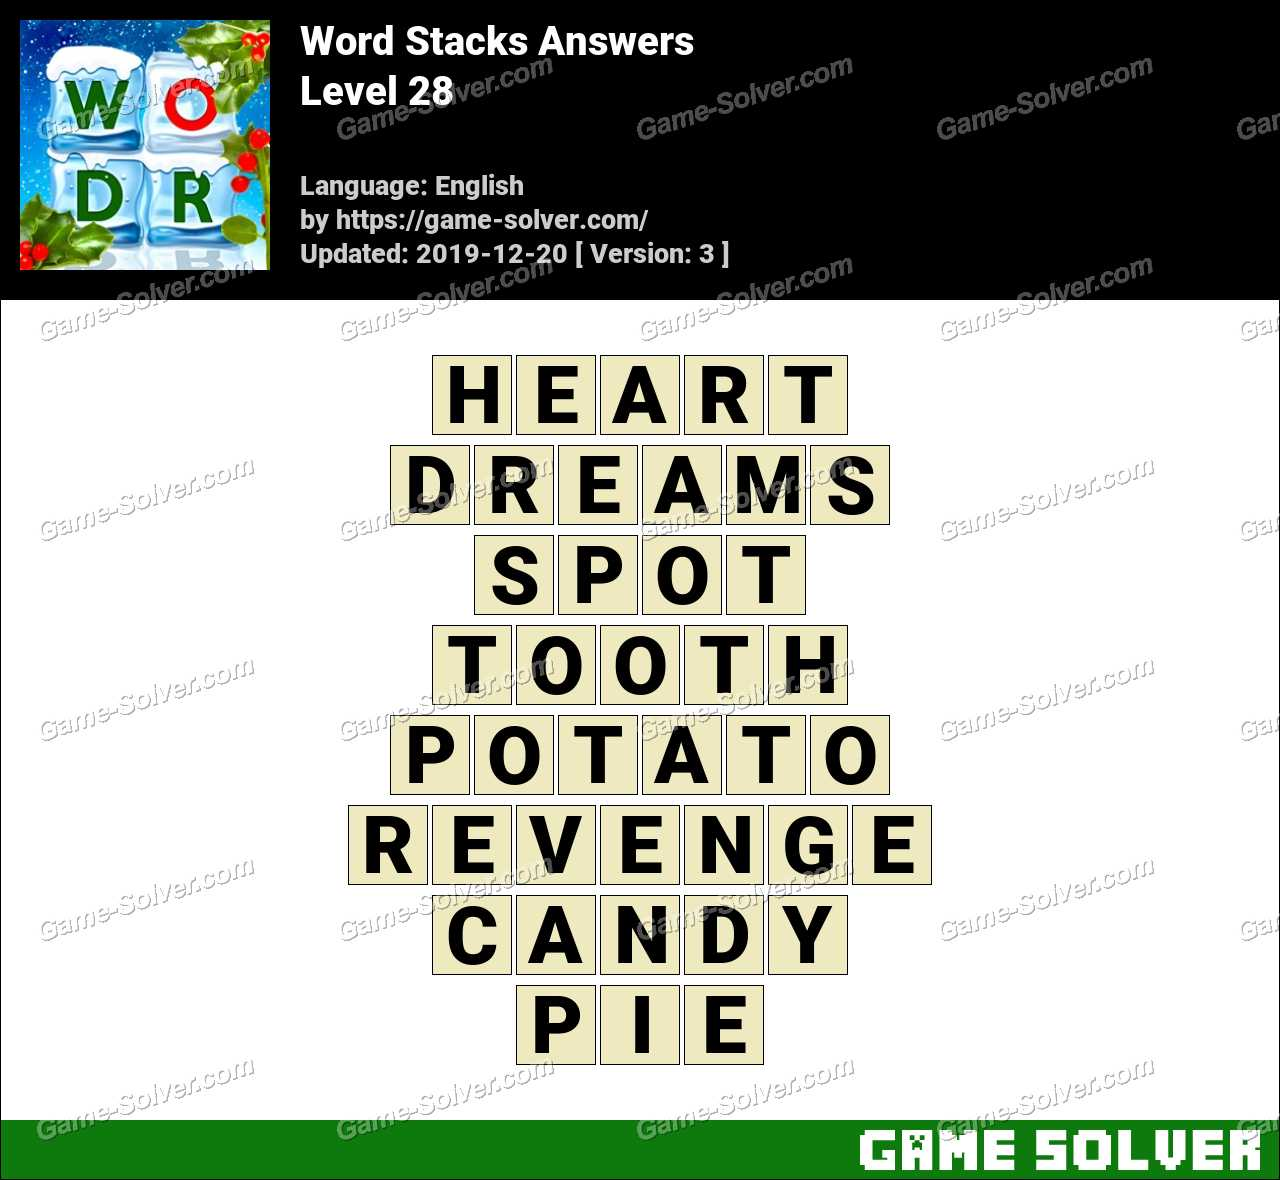 Word Stacks Level 28 Answers